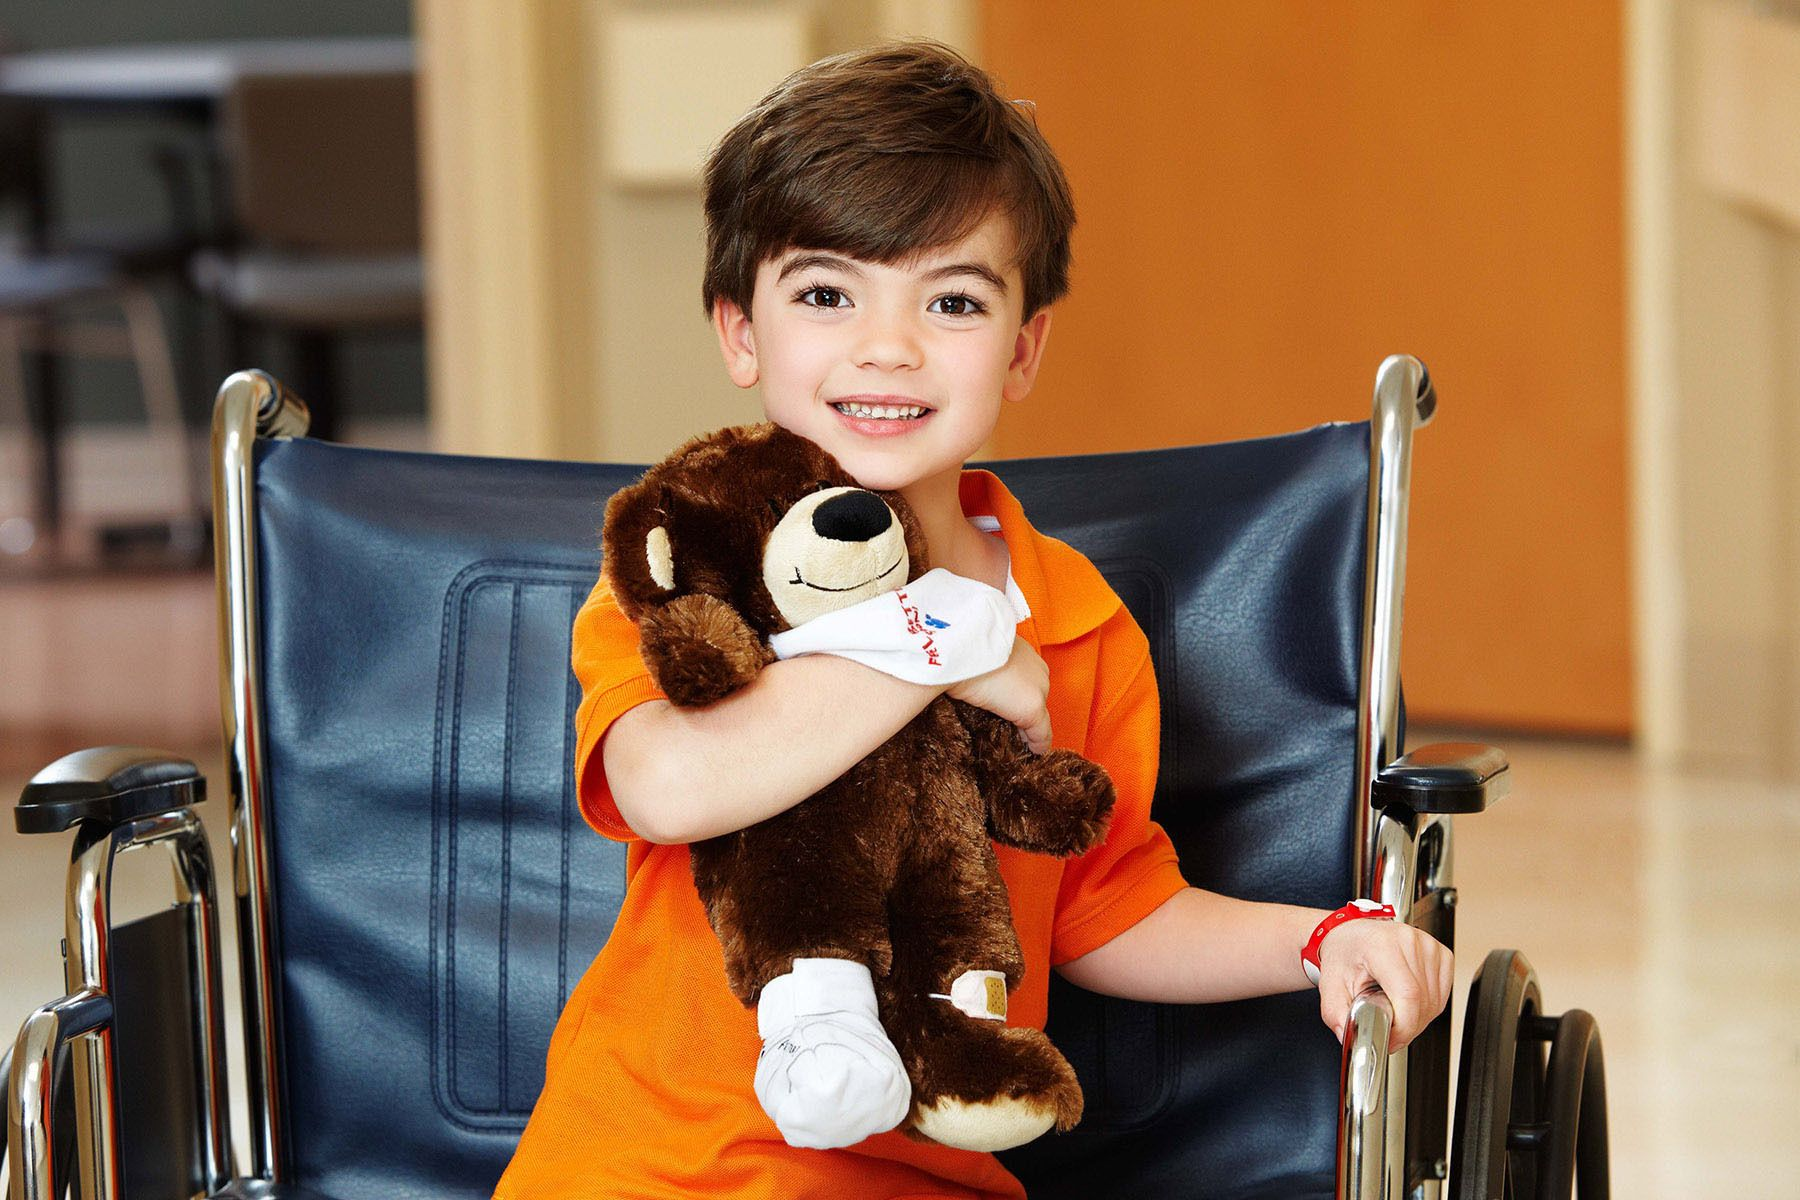 1lifestyle_location_boy_teddy_bear_wheelchair_hospital